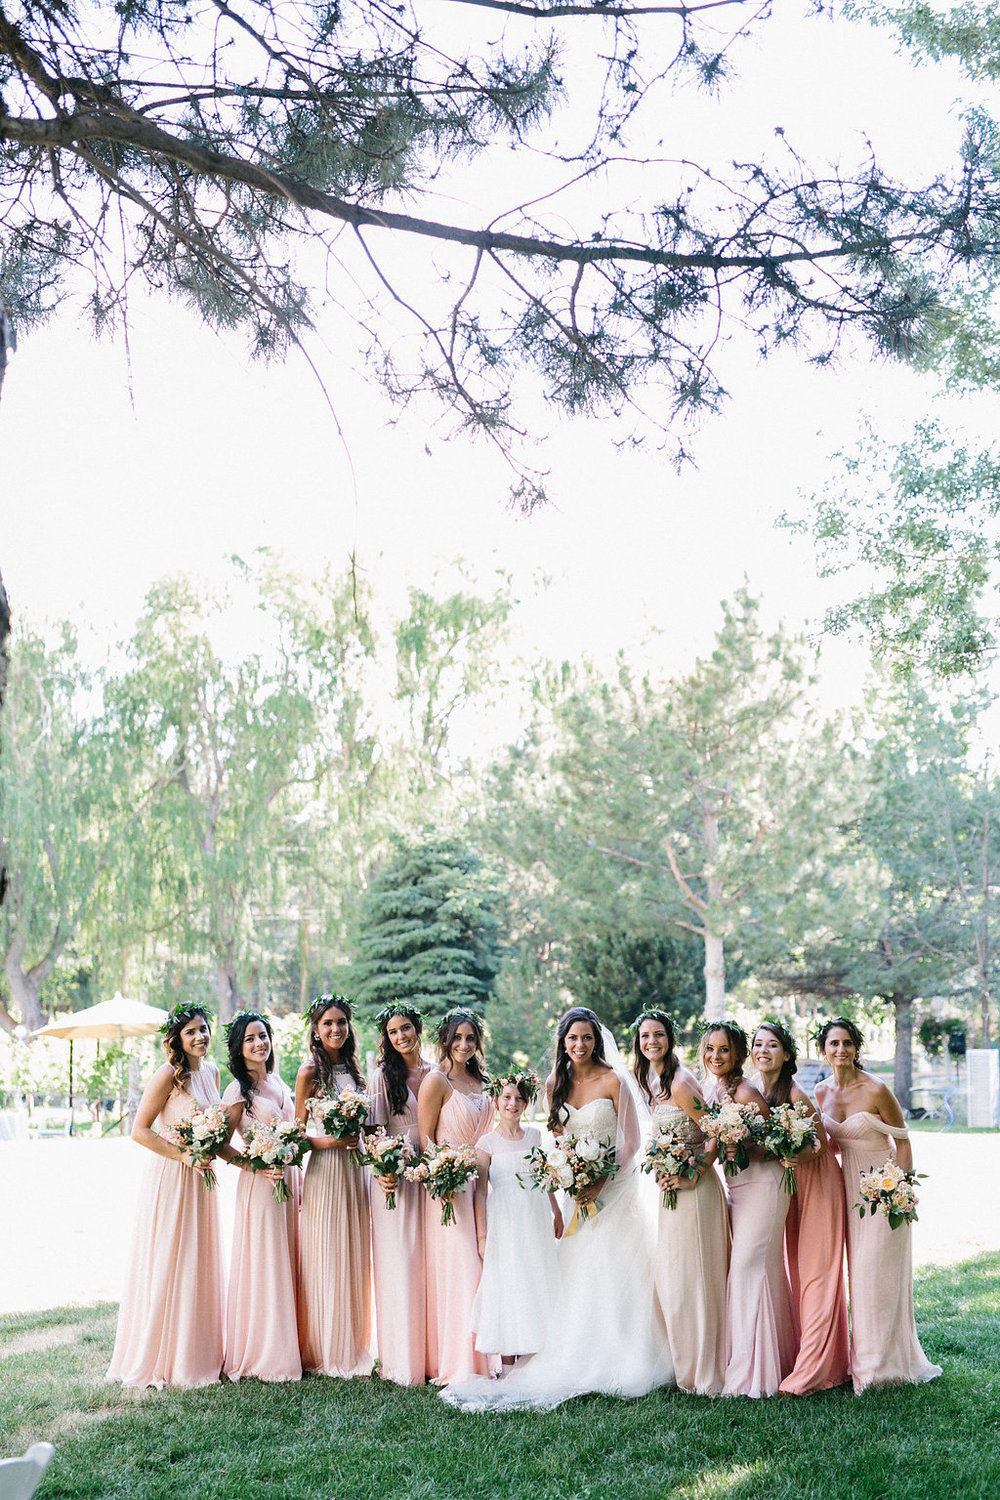 La Caille Wedding | Portuguese Inspired Wedding | Michelle Leo Events | Utah Event Planner and Designer | Jacque Lynn Photography